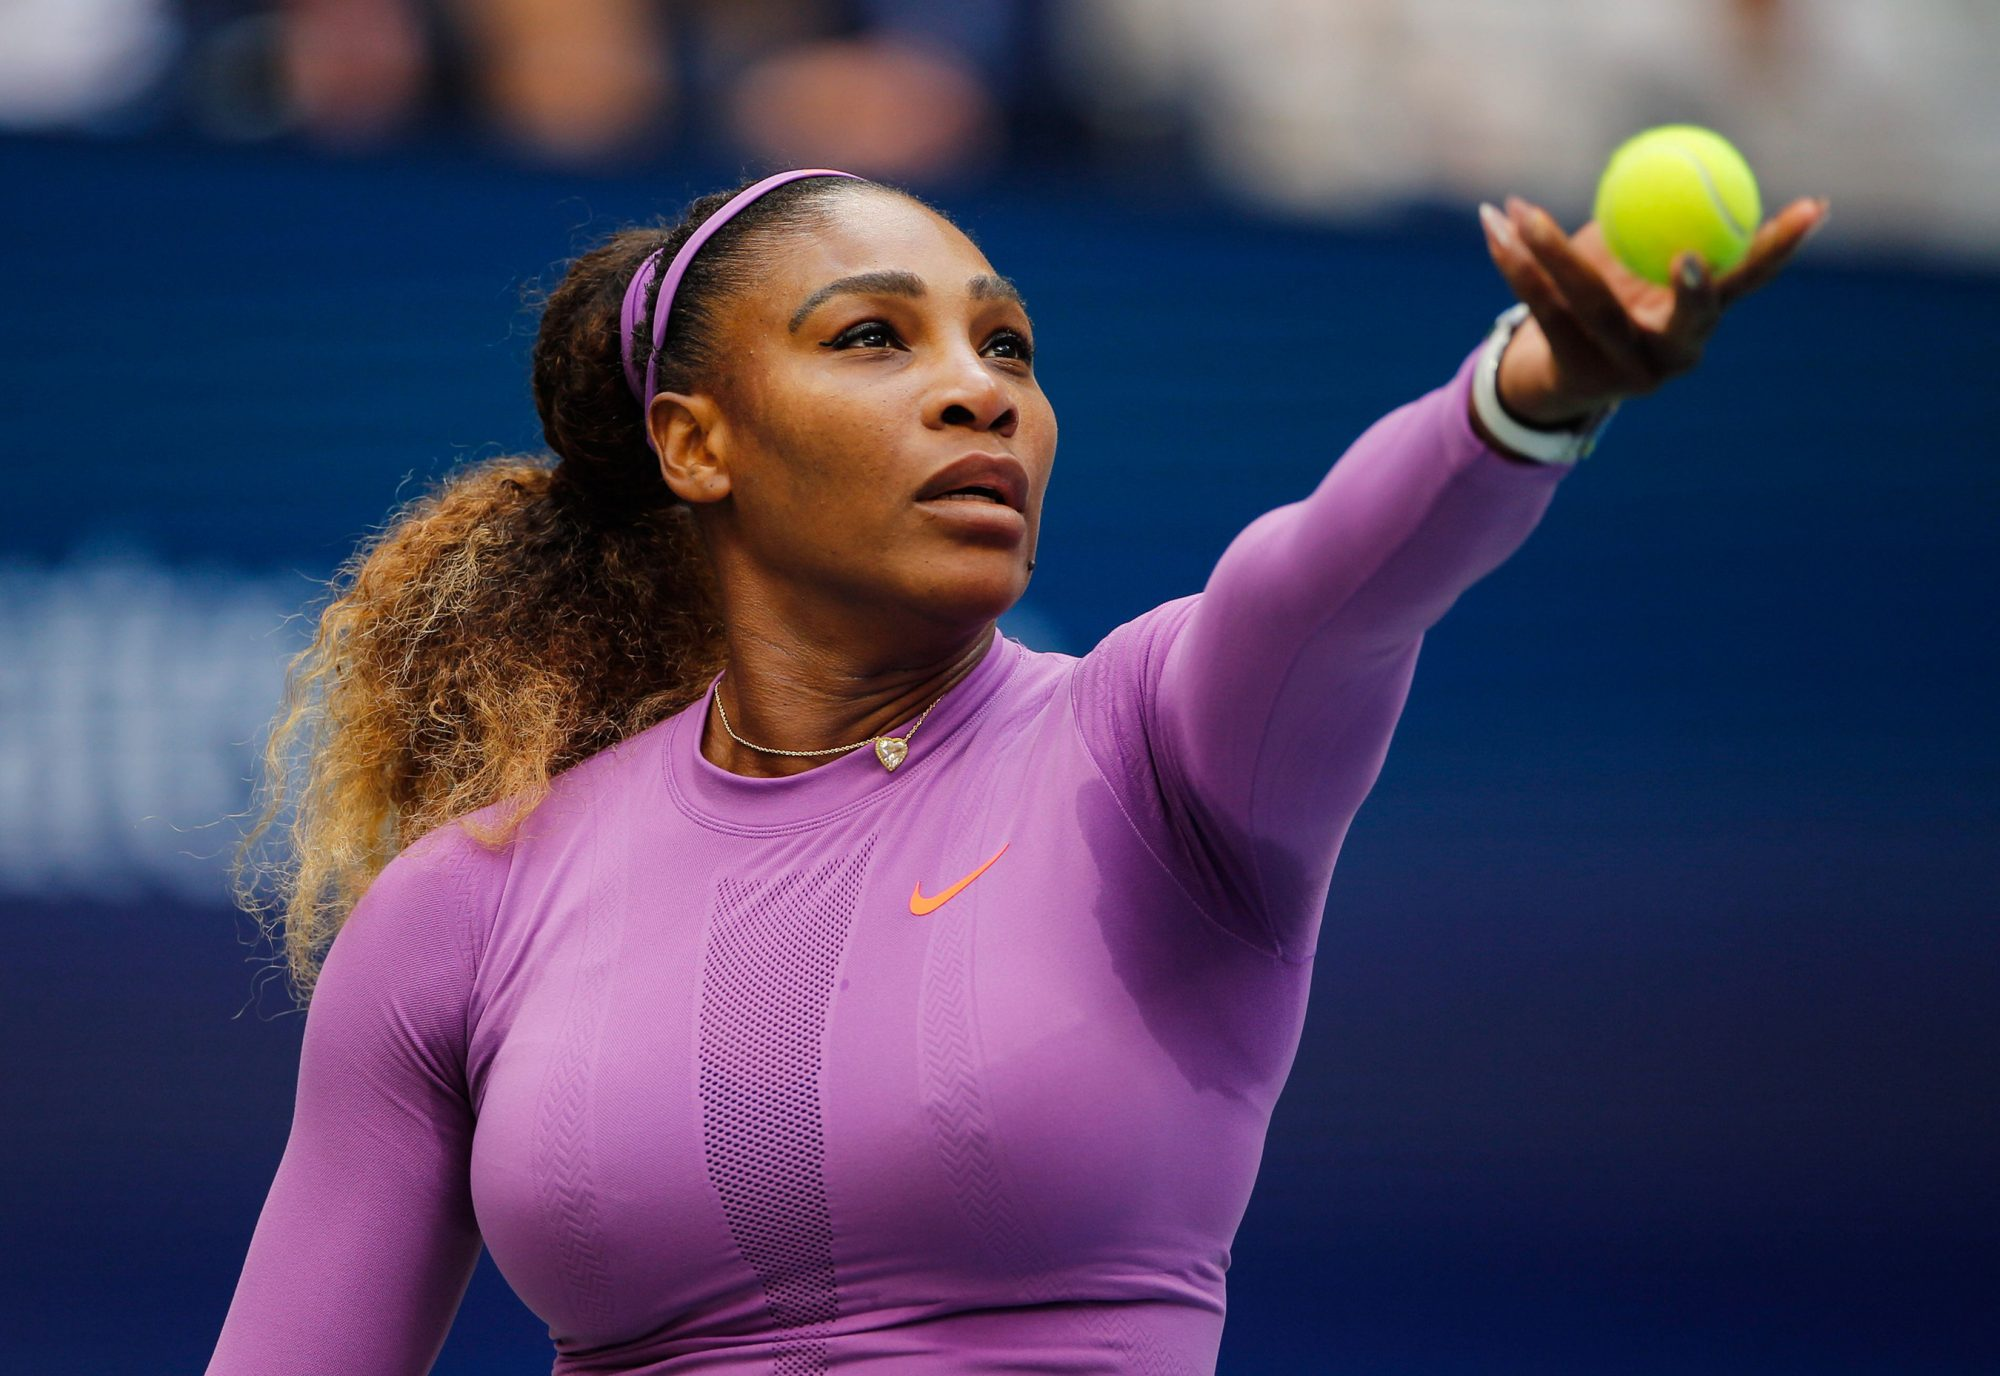 Serena Williams Reveals How She Will Narrate Her First